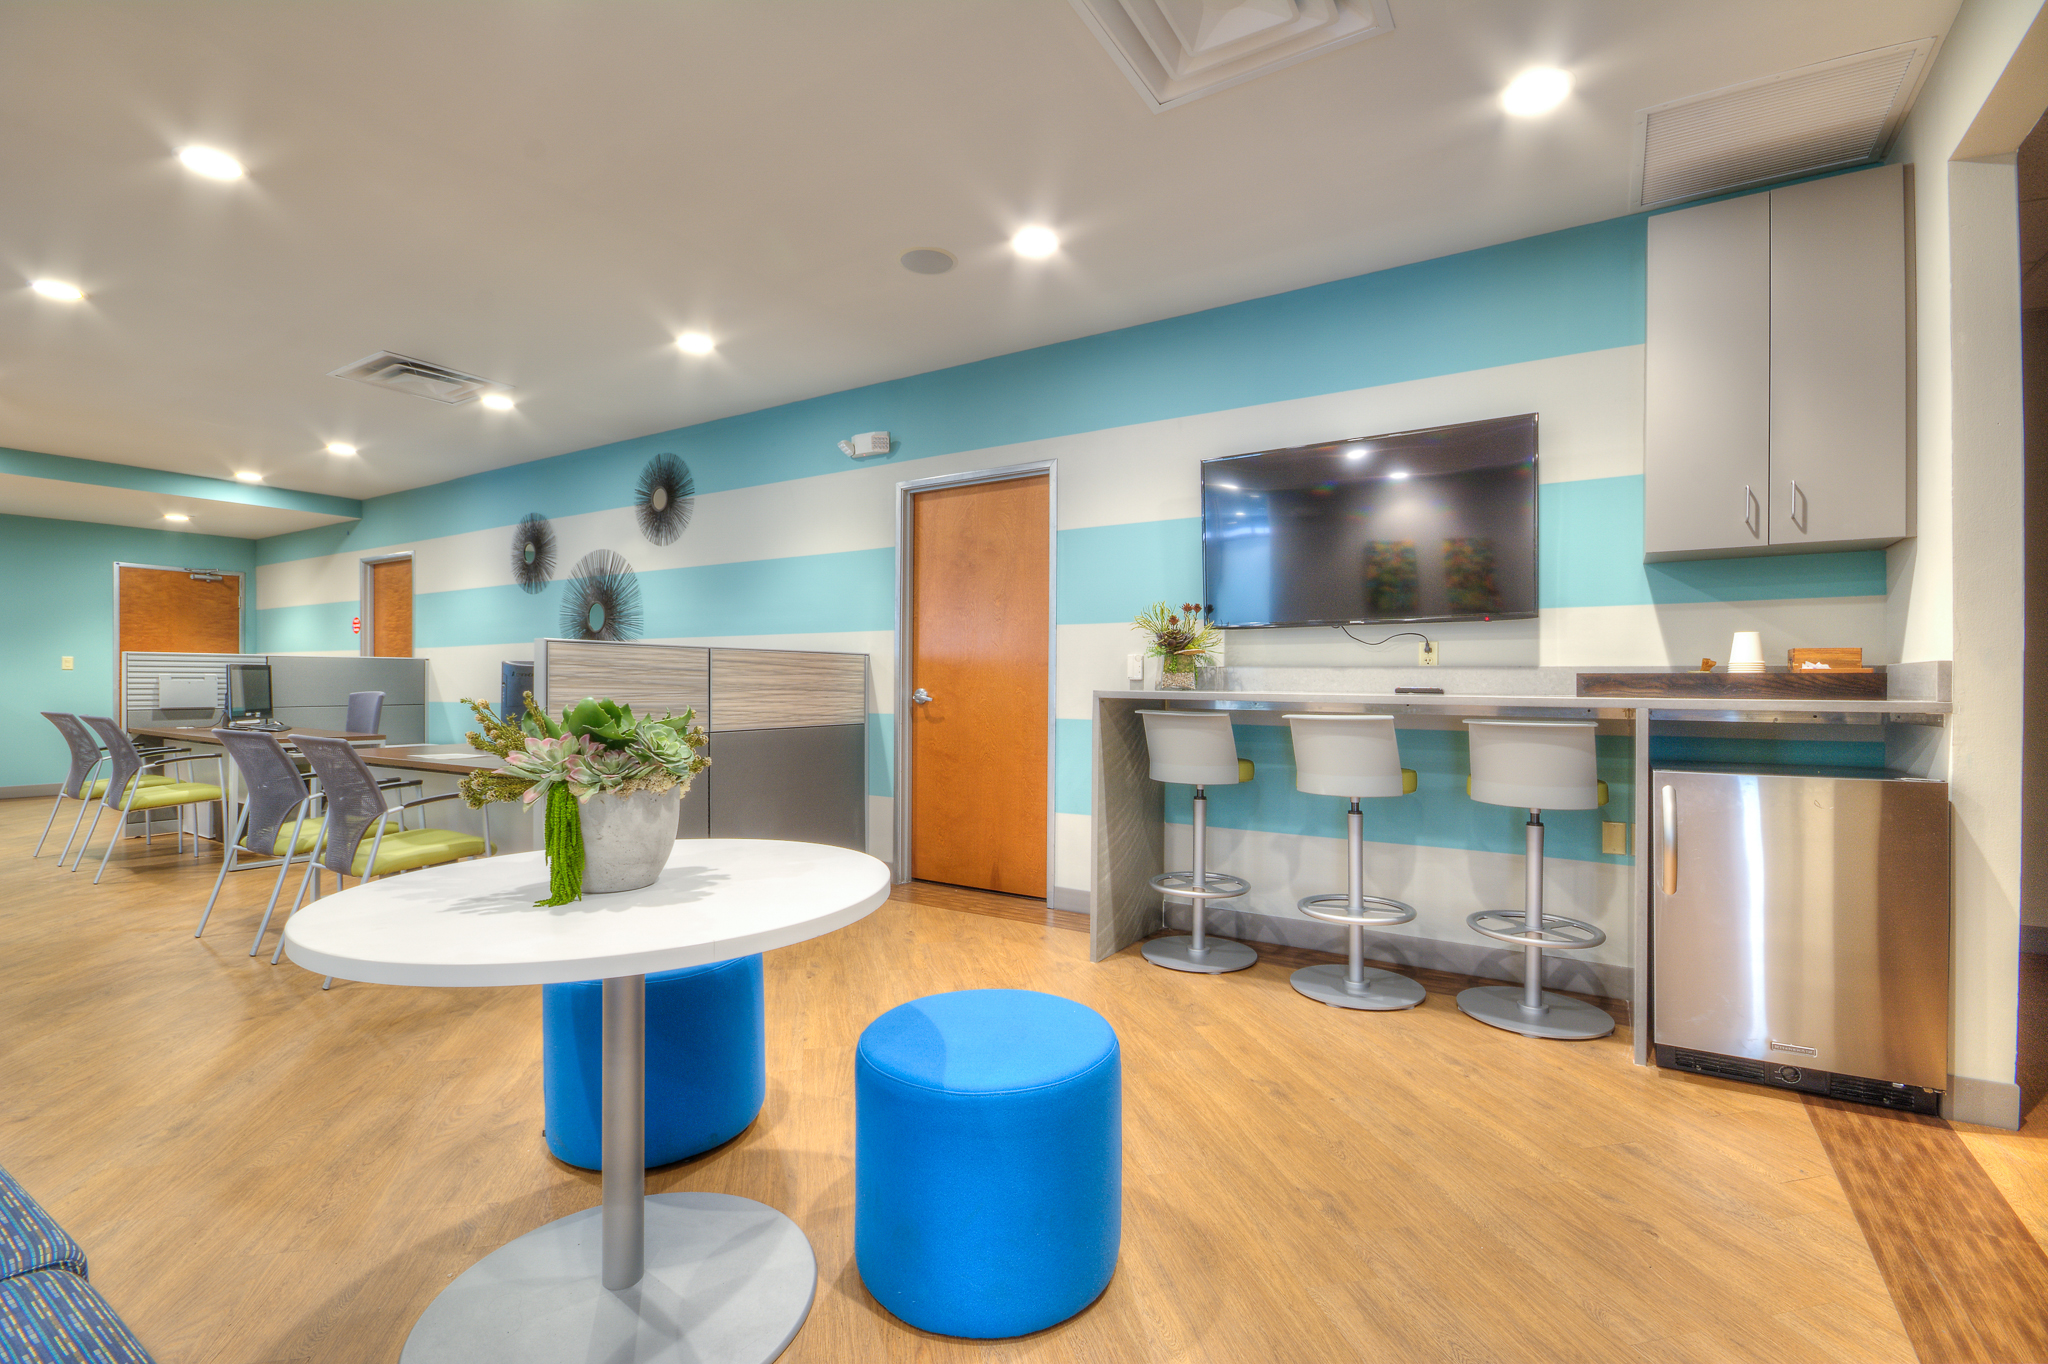 Quarters on campus leasing office michelle thomas design for Leasing office decorating ideas